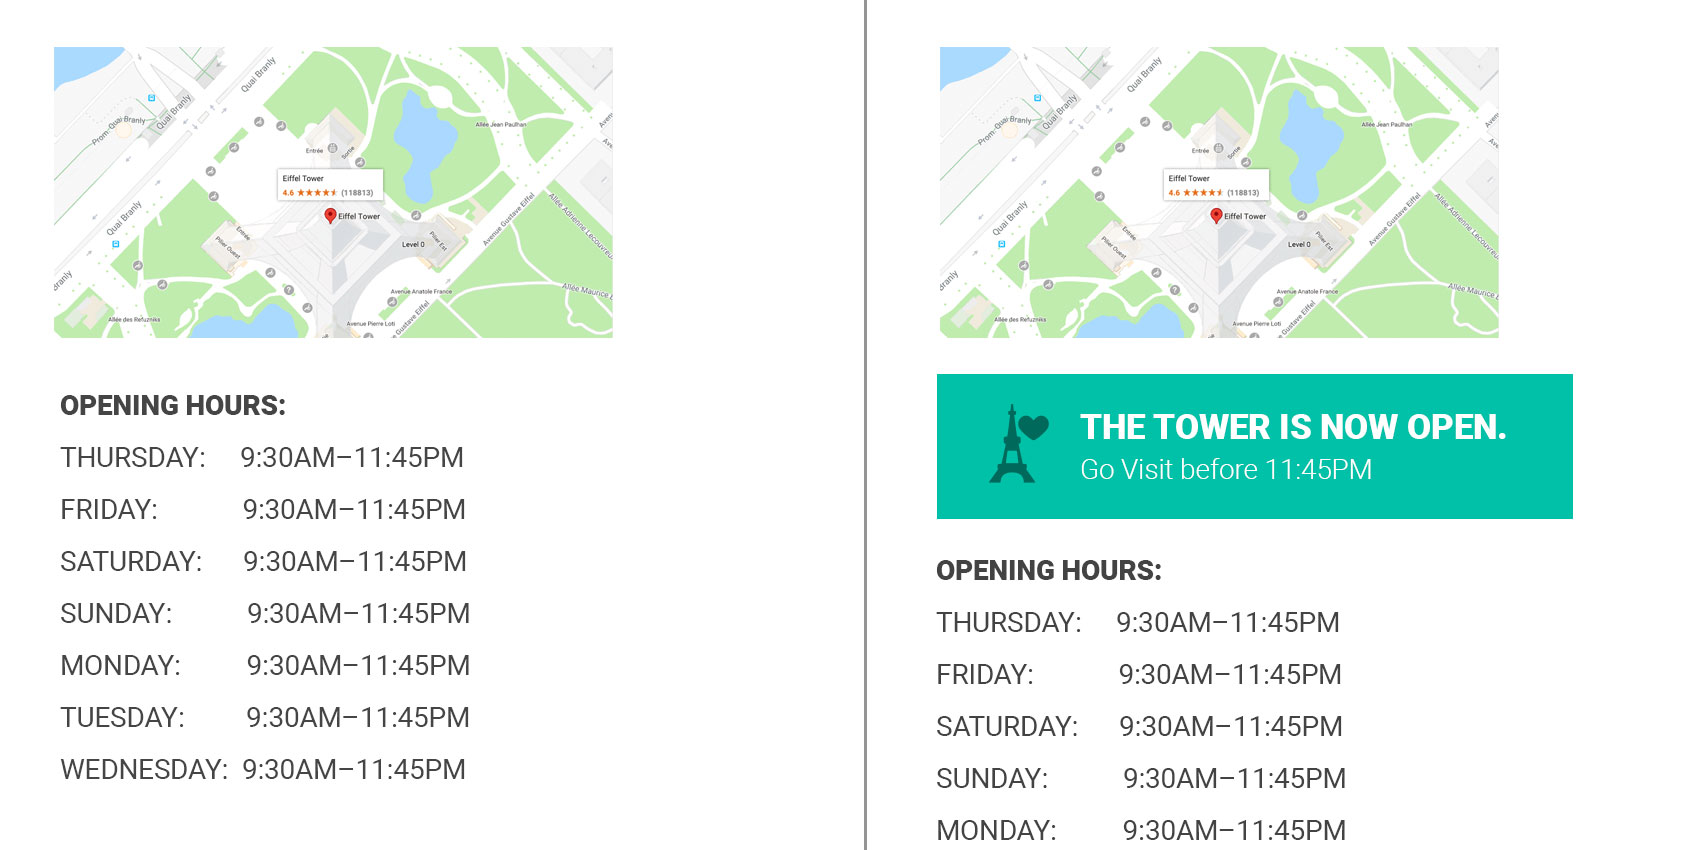 destination-guide-personalization-opening-hours